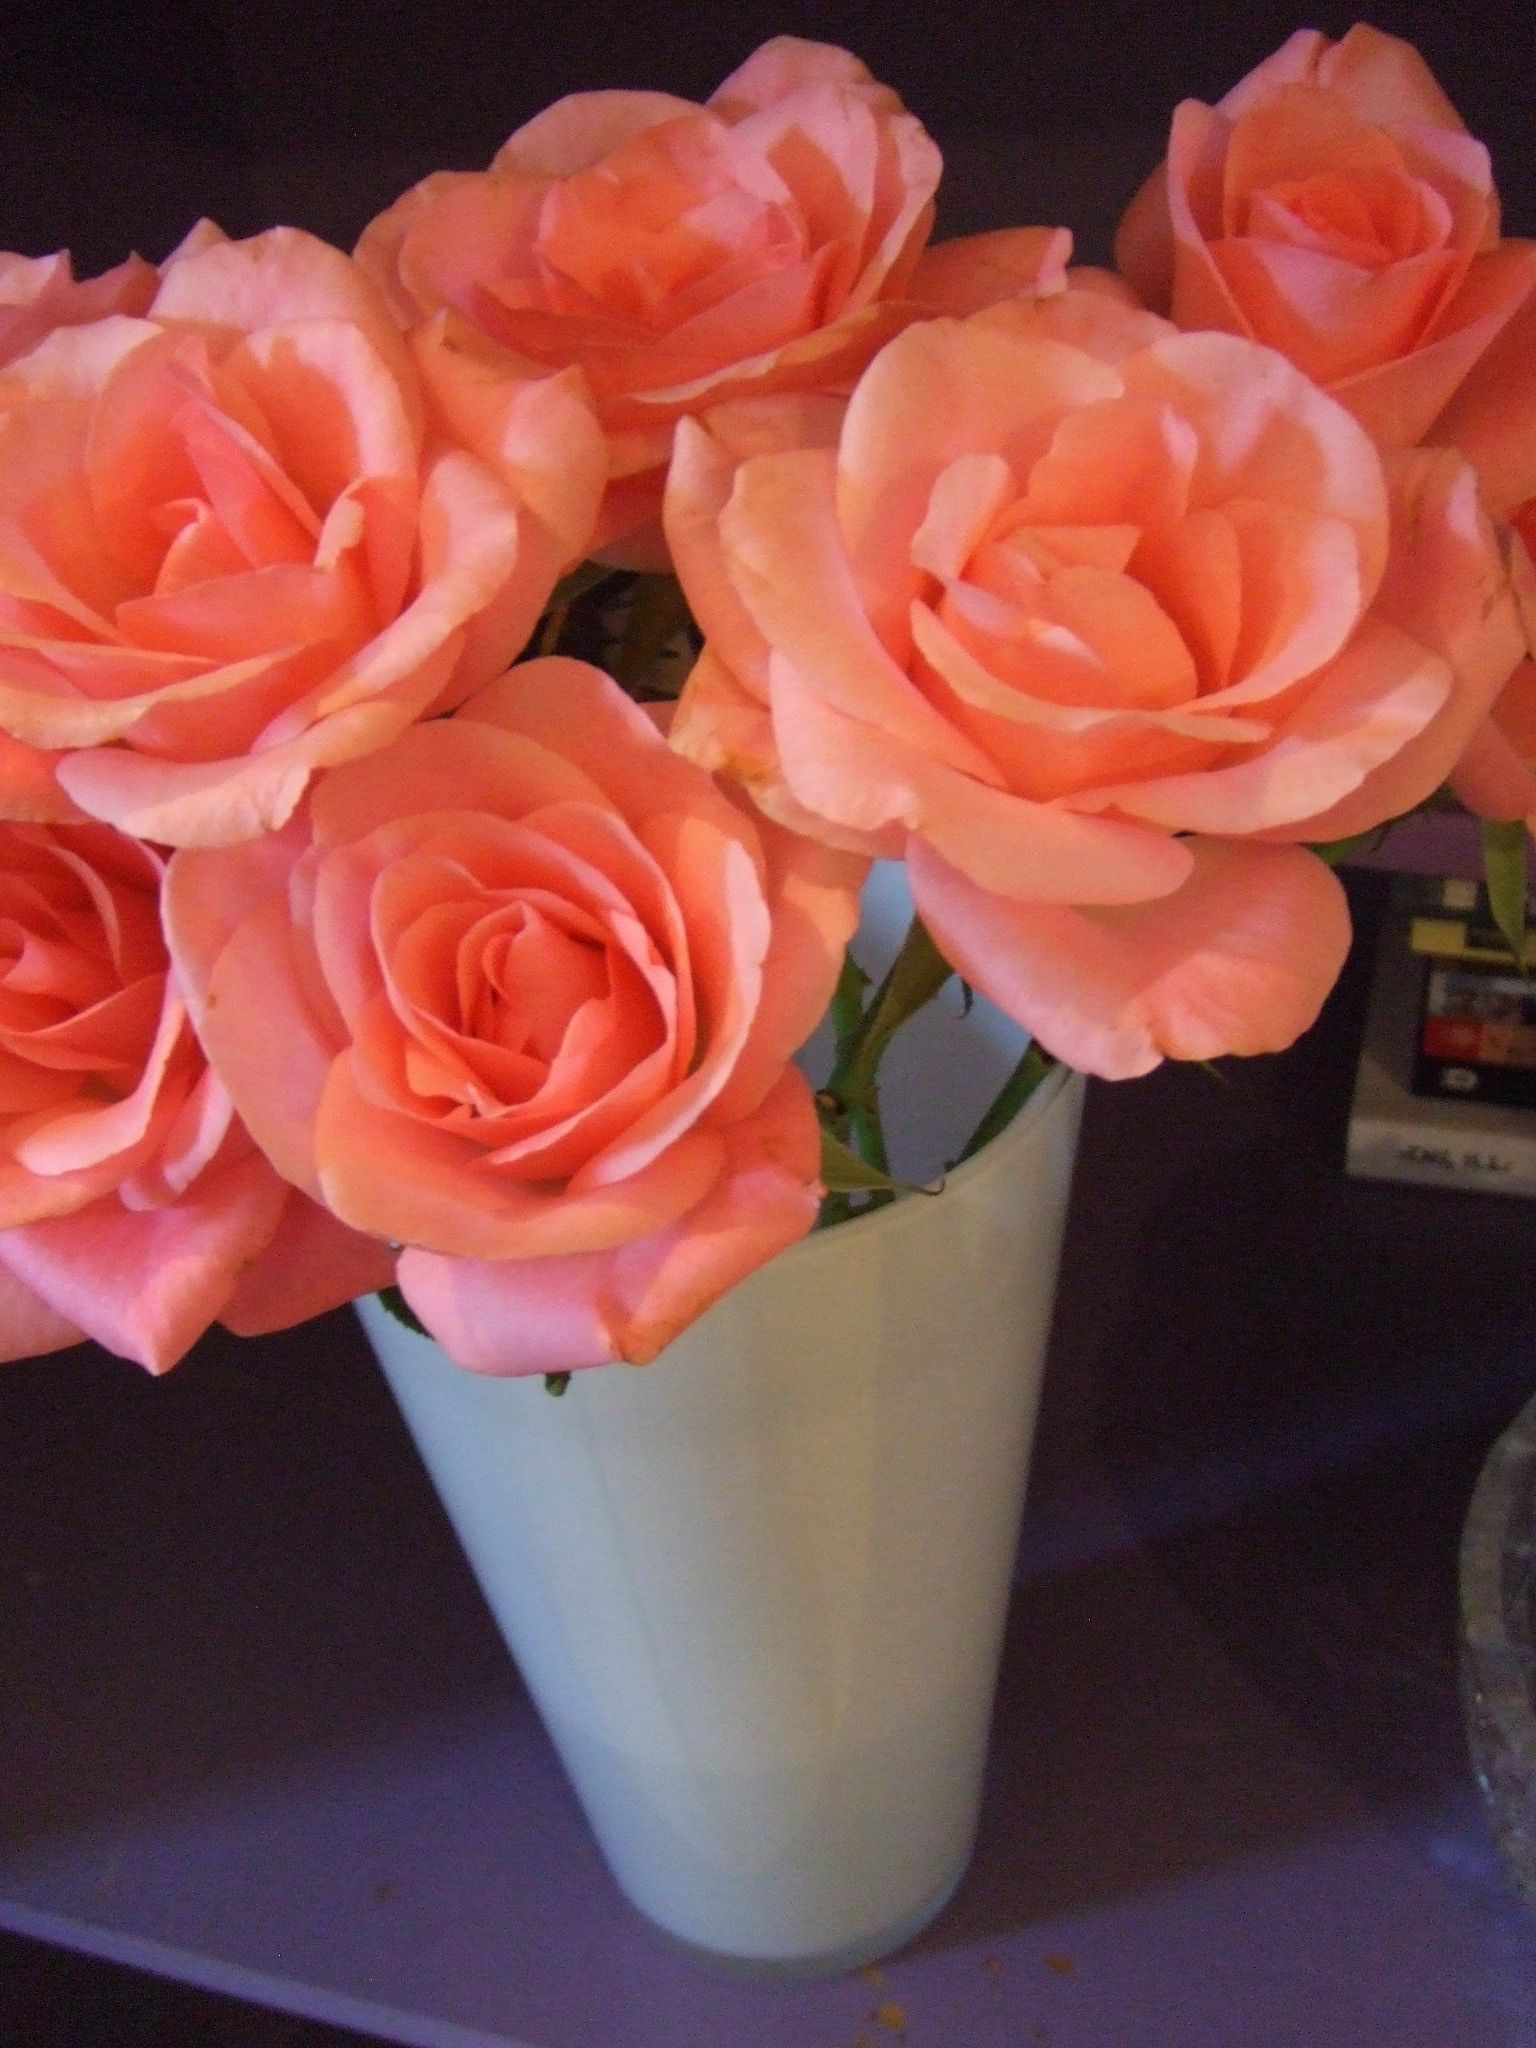 Favorite color rose these and the cold water rose! | Flowers that I ...